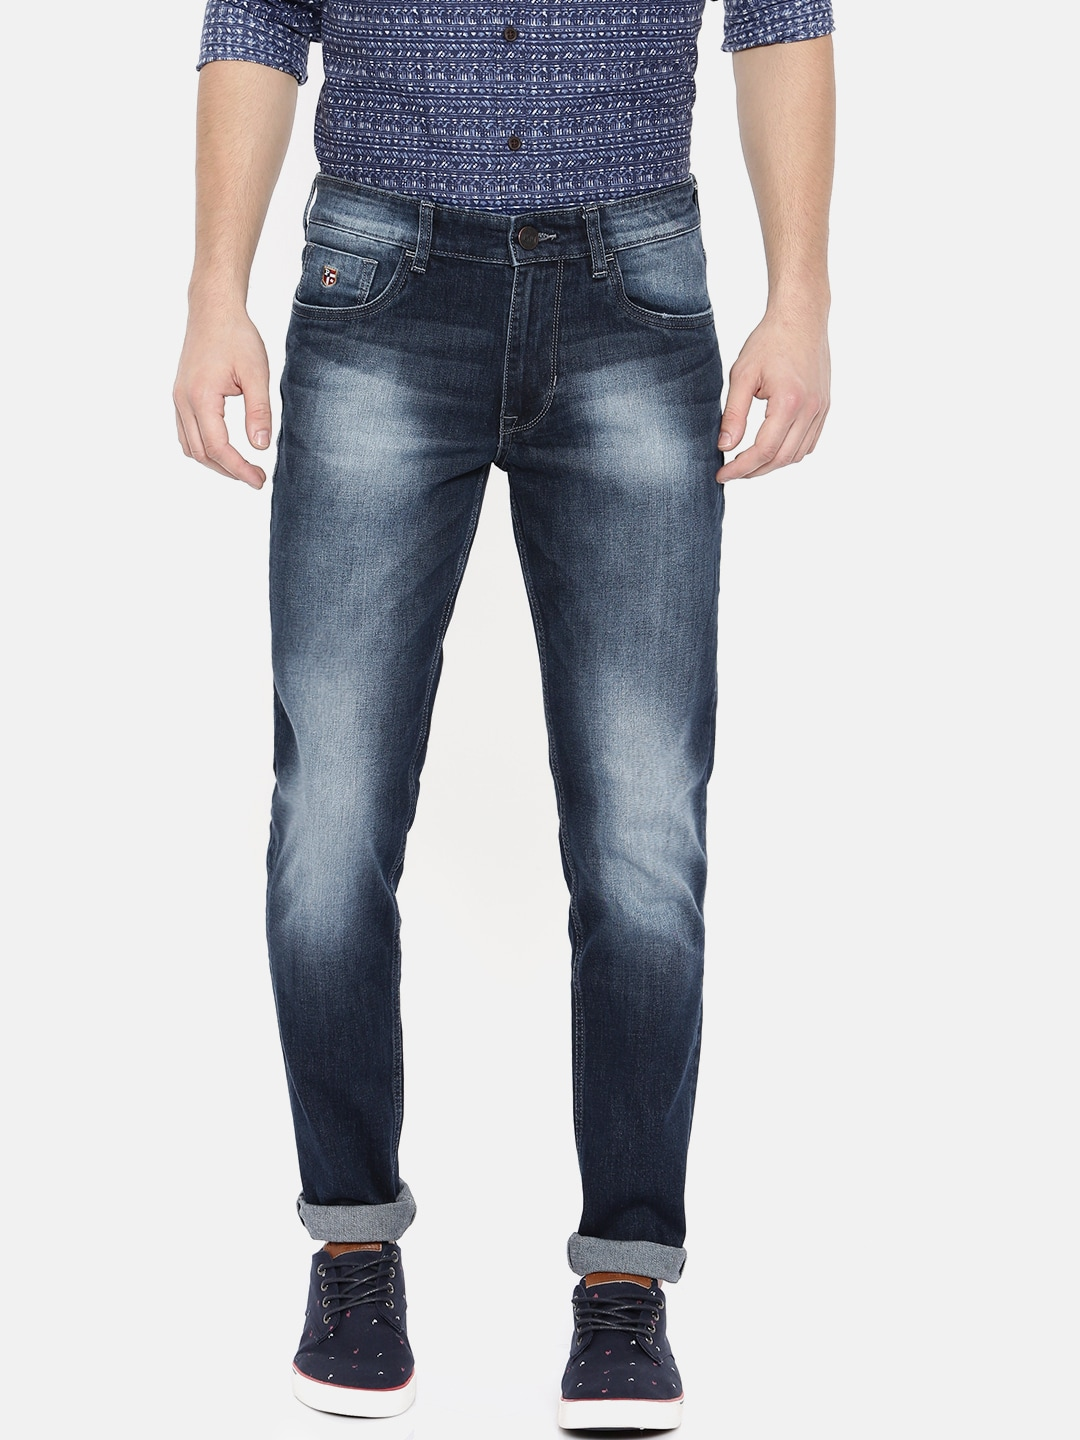 b6619d80 Men Jeans - Buy Jeans for Men in India at best prices | Myntra